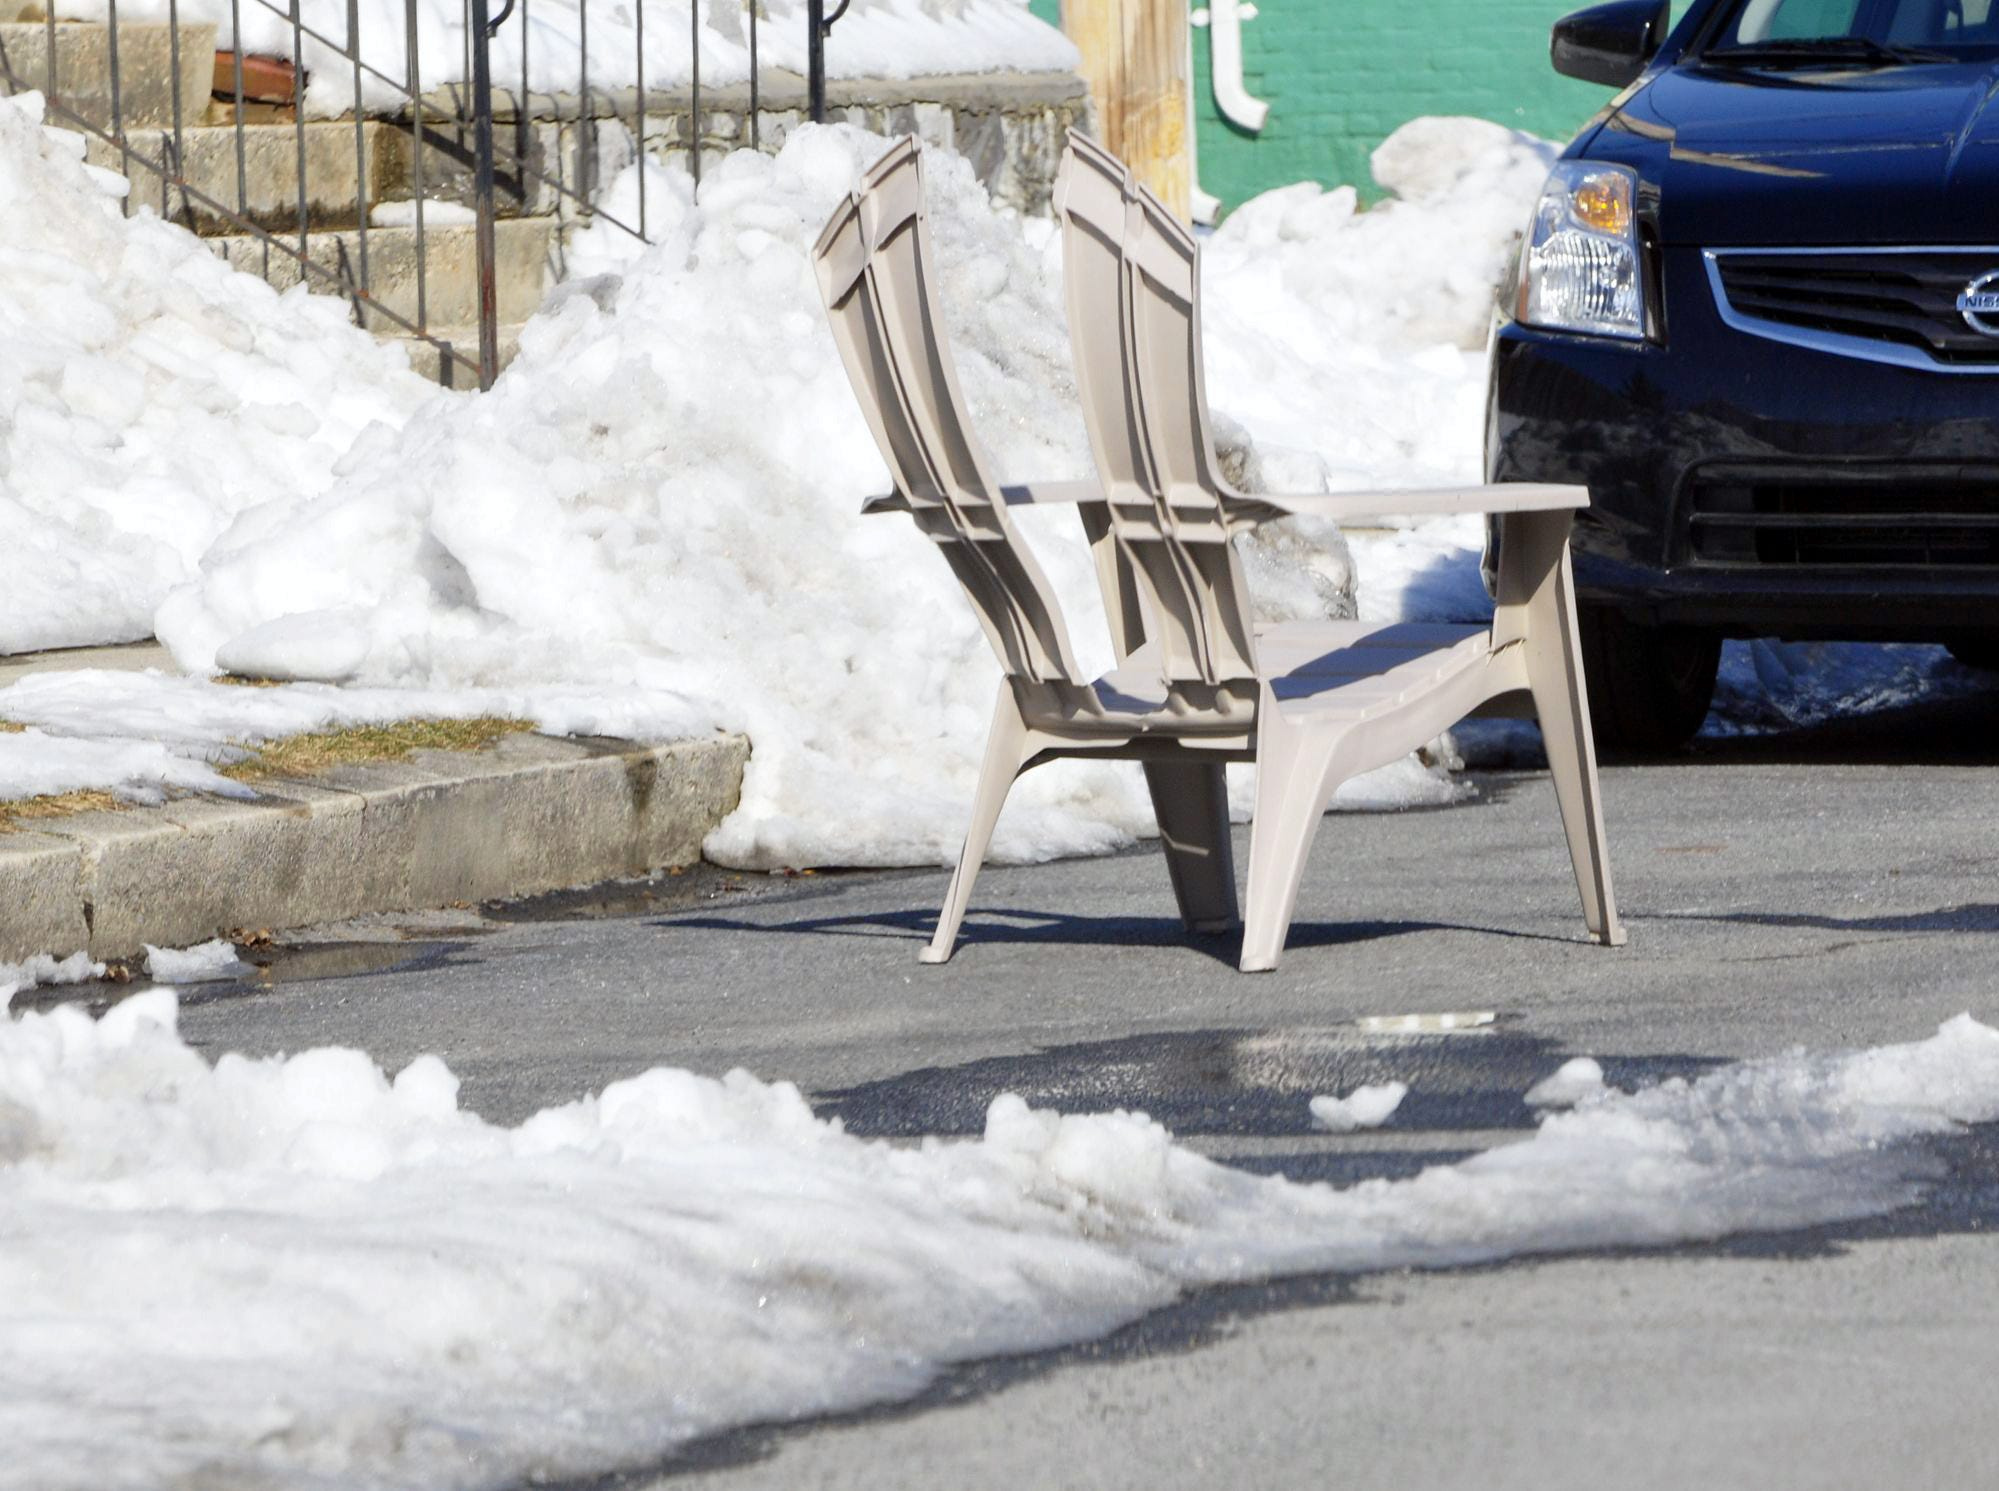 If you have a broken chair, then you have a parking space saver!